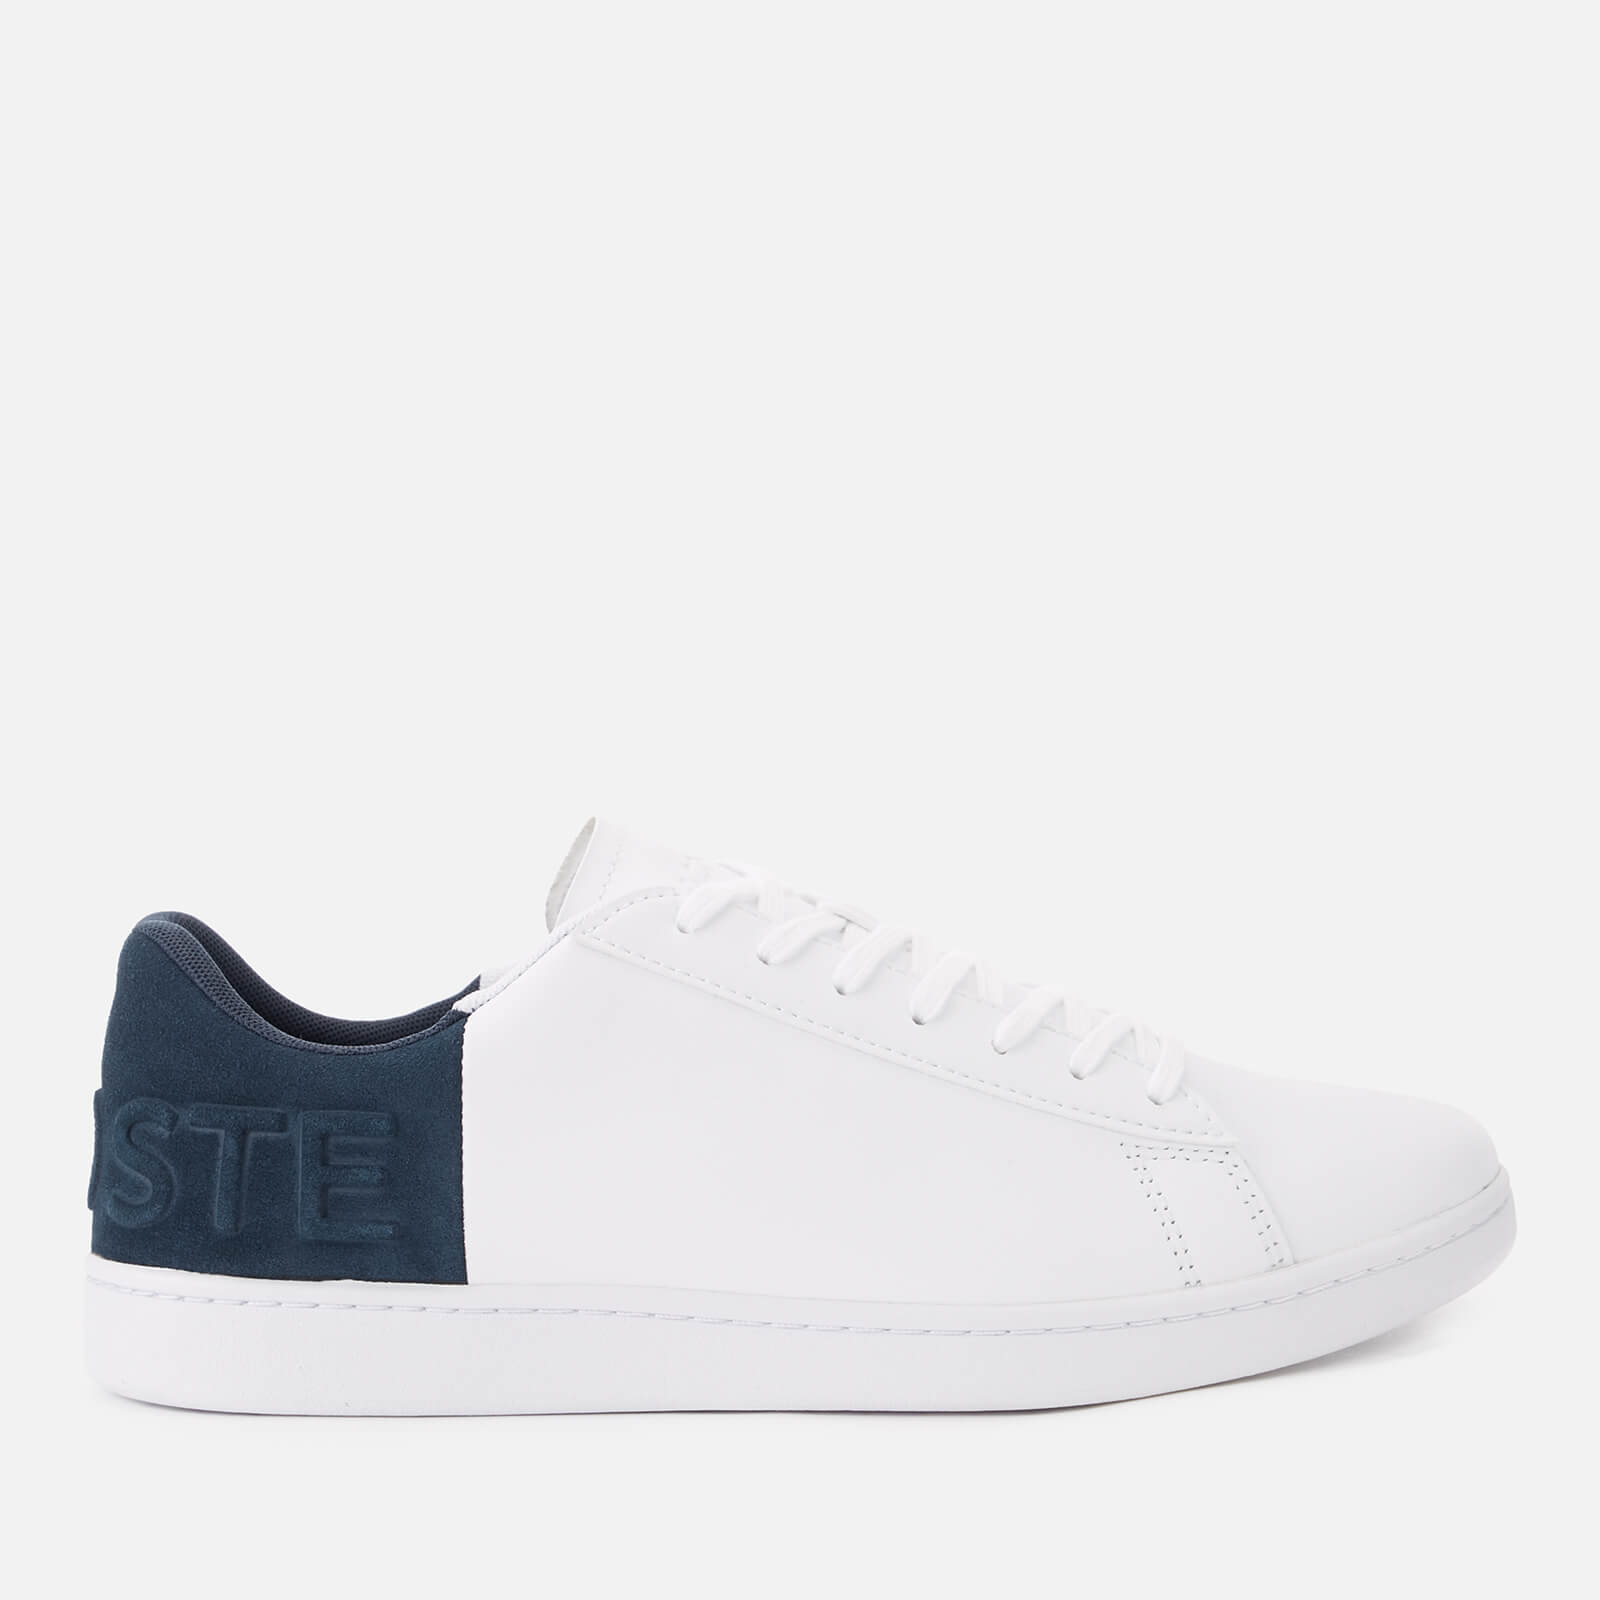 1faa544a4 Lacoste Men s Carnaby Evo 318 6 Leather Suede Trainers - White Navy - Free  UK Delivery over £50